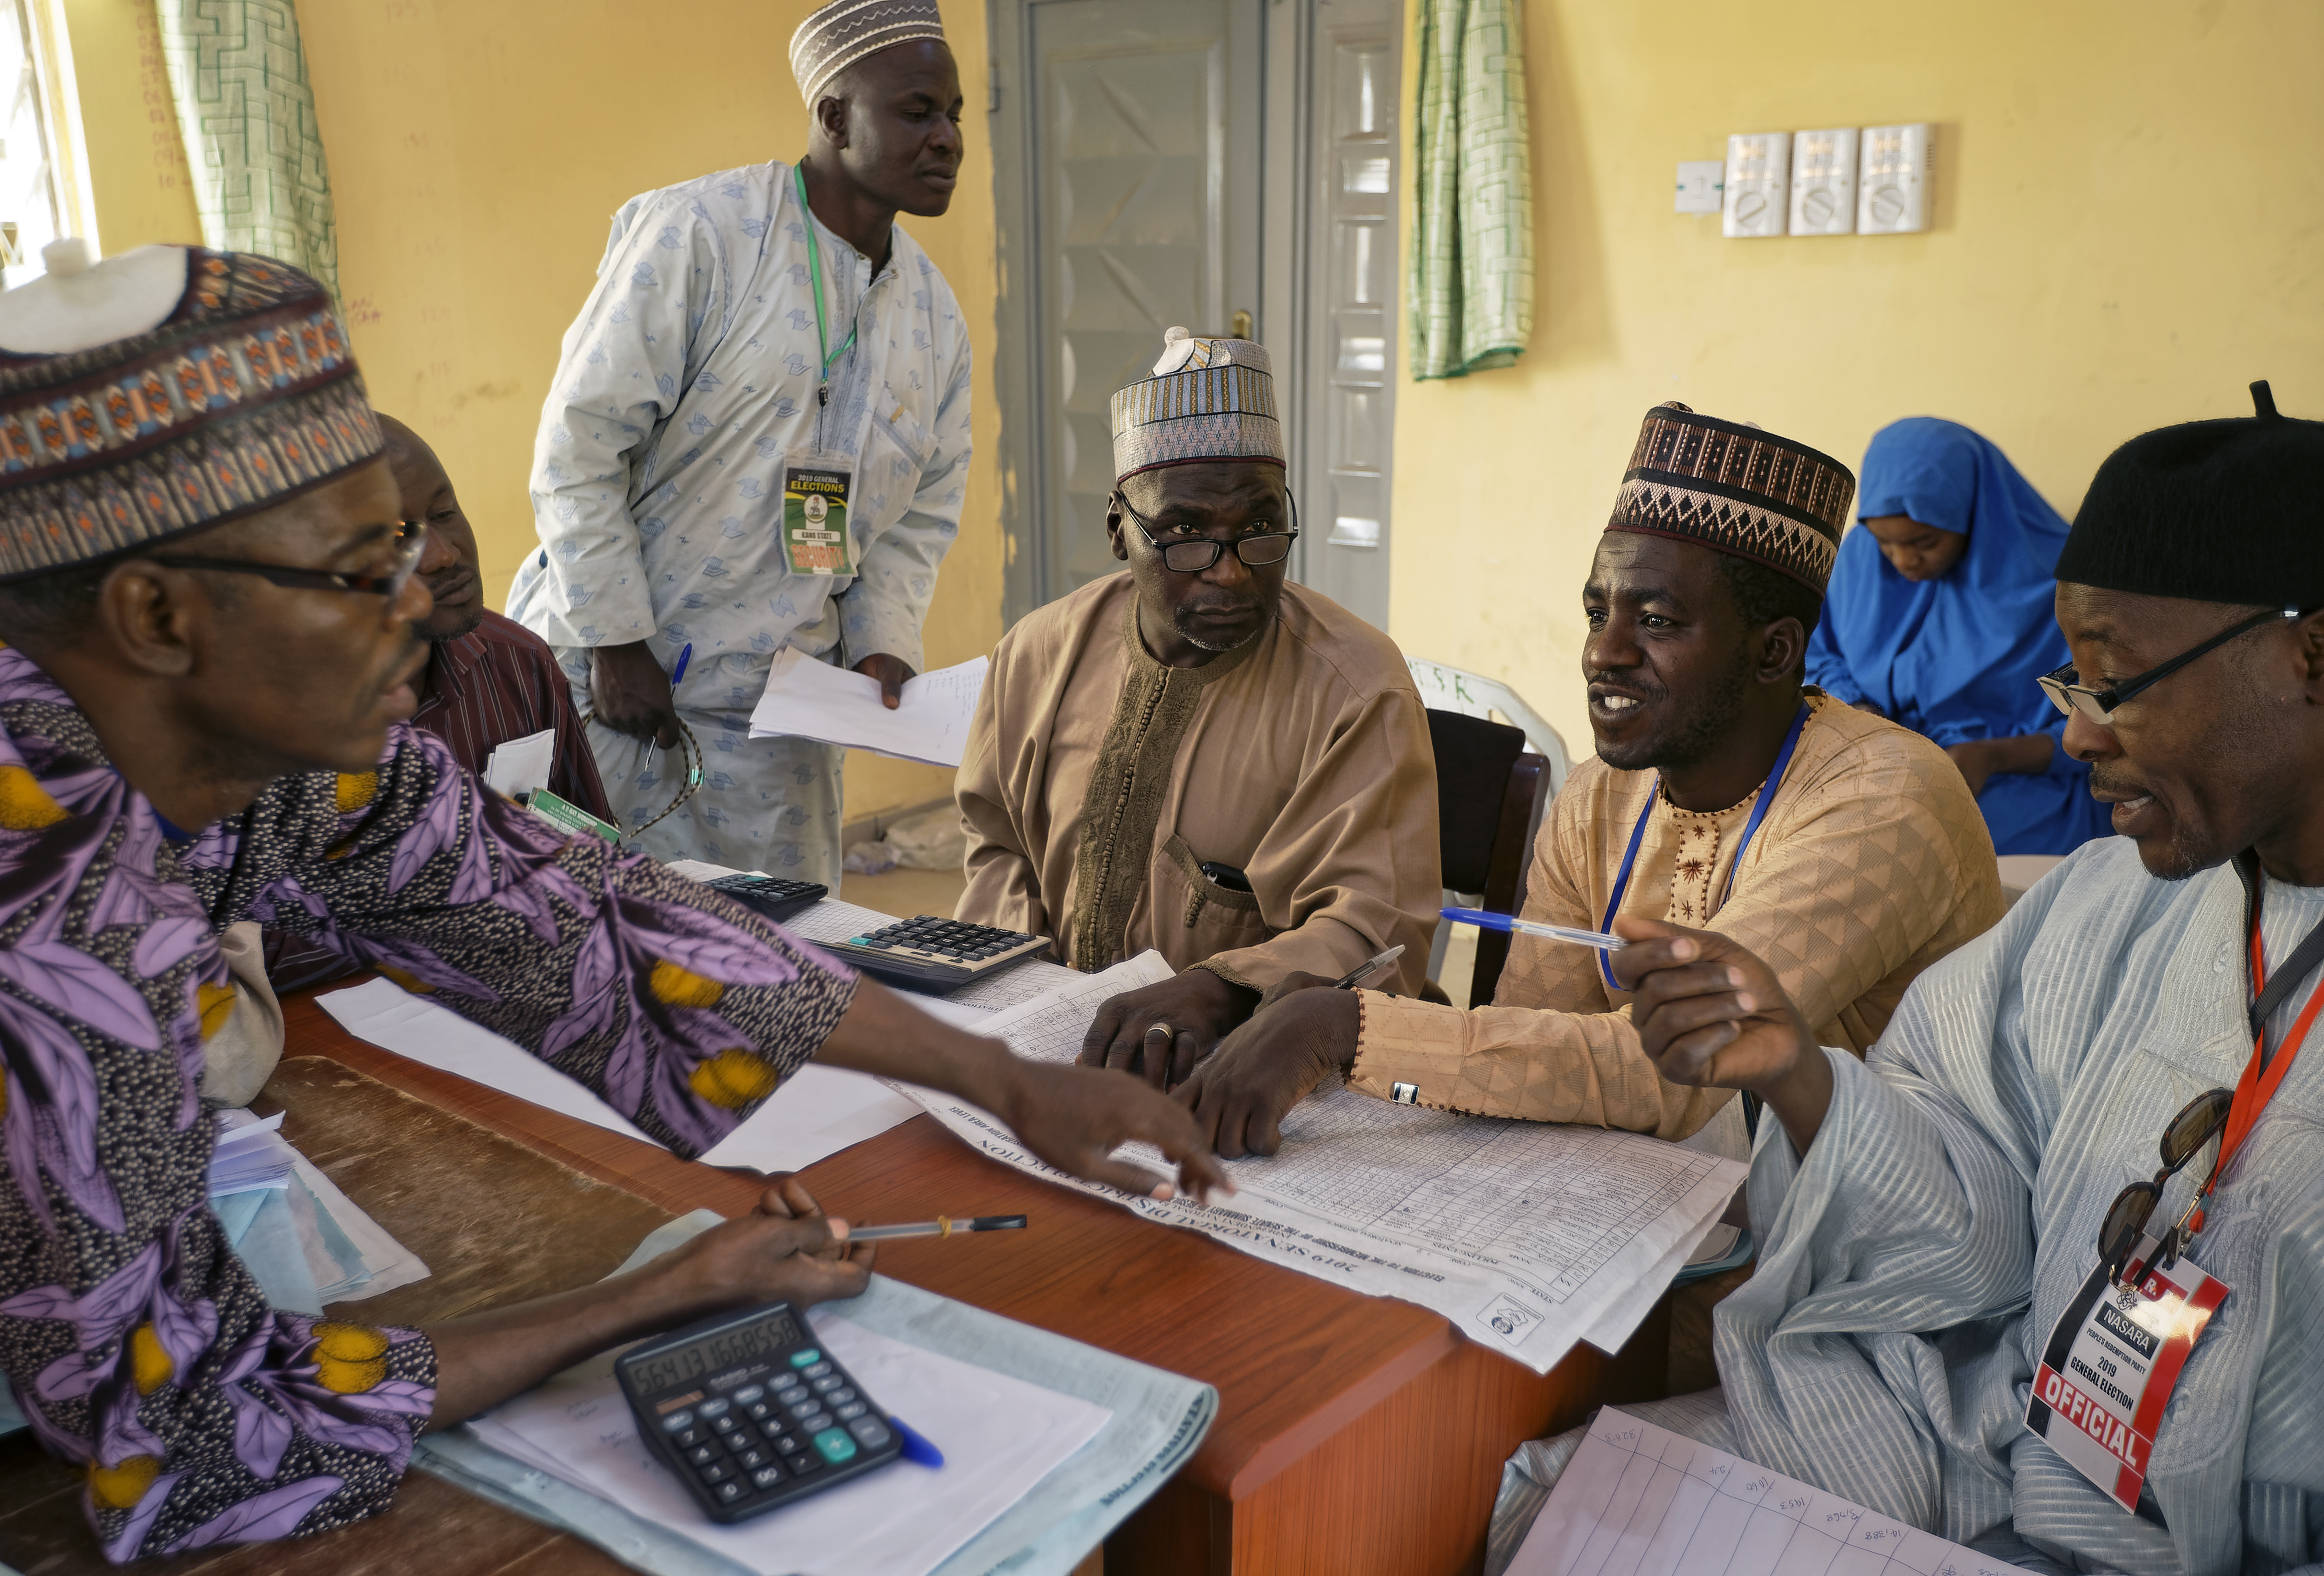 Electoral officials compile voting results at a collation center in Kano, northern Nigeria Sunday, Feb. 24, 2019. Vote counting continued Sunday as Nigerians awaited the outcome of a presidential poll seen as a tight race between the president and a former vice president. (AP Photo/Ben Curtis)